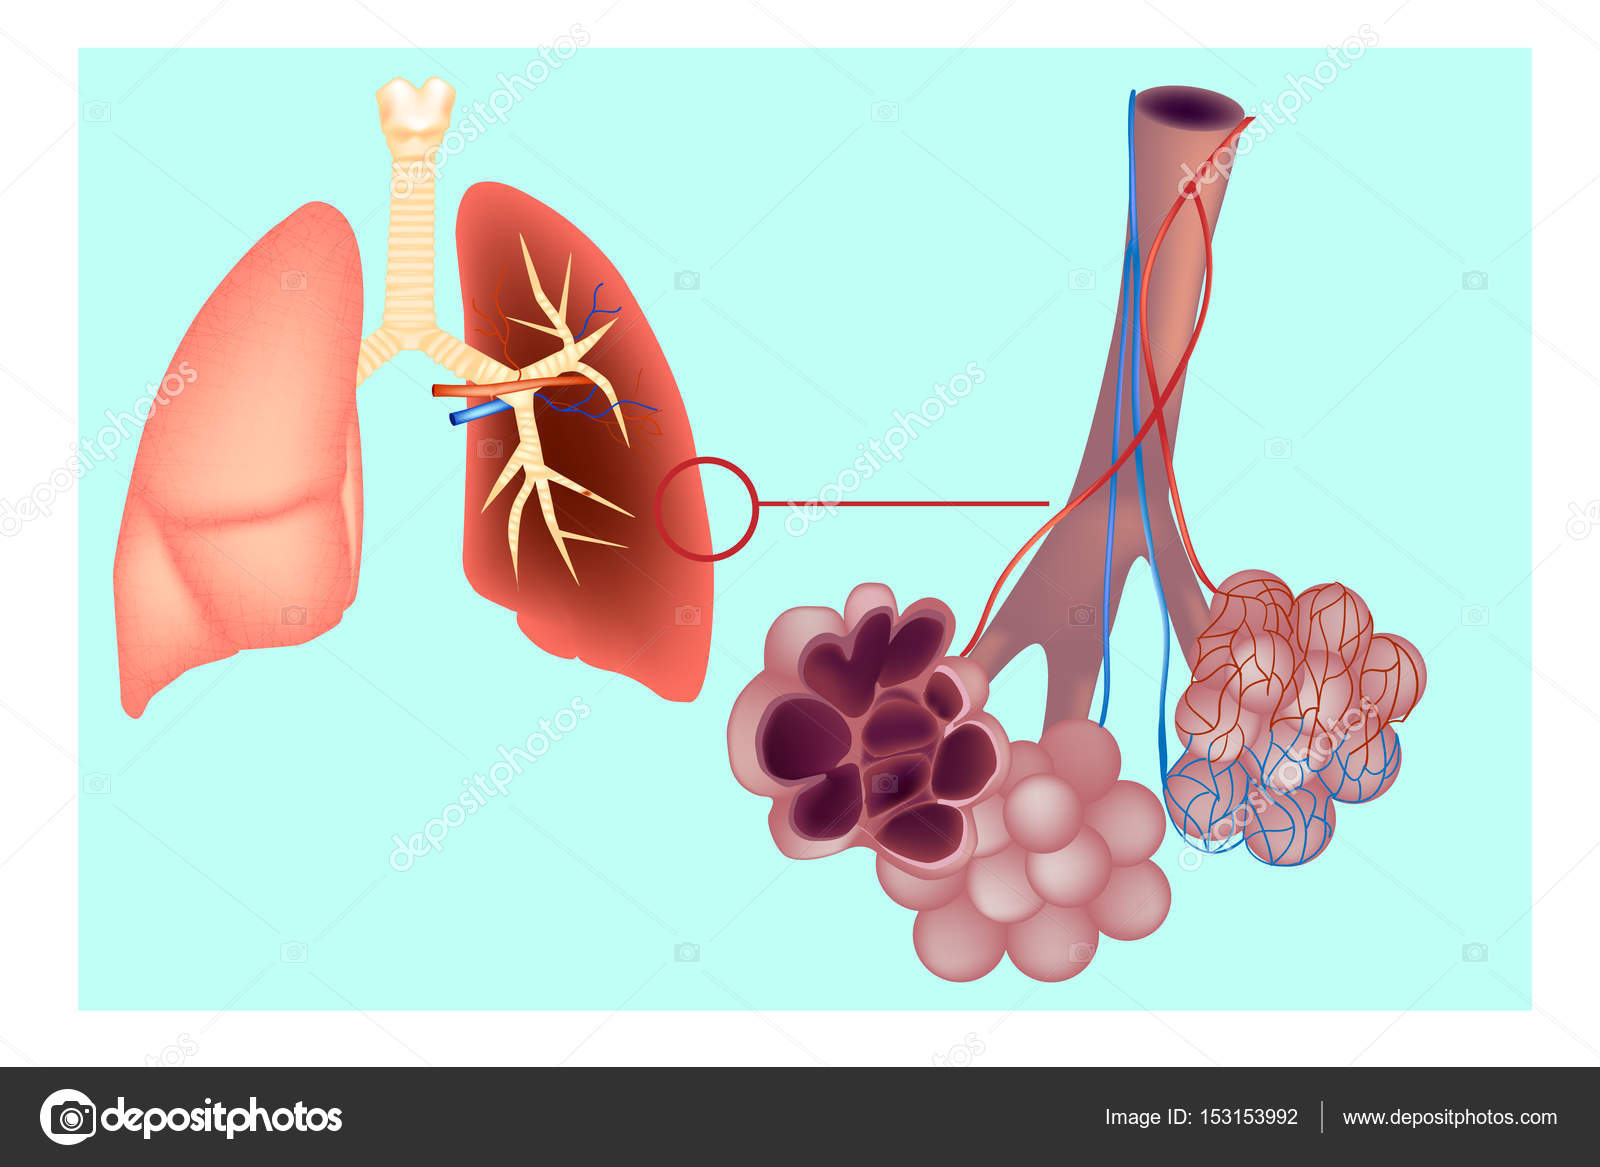 Diagram the pulmonary alveolus (air sacs) in the lung. The ...